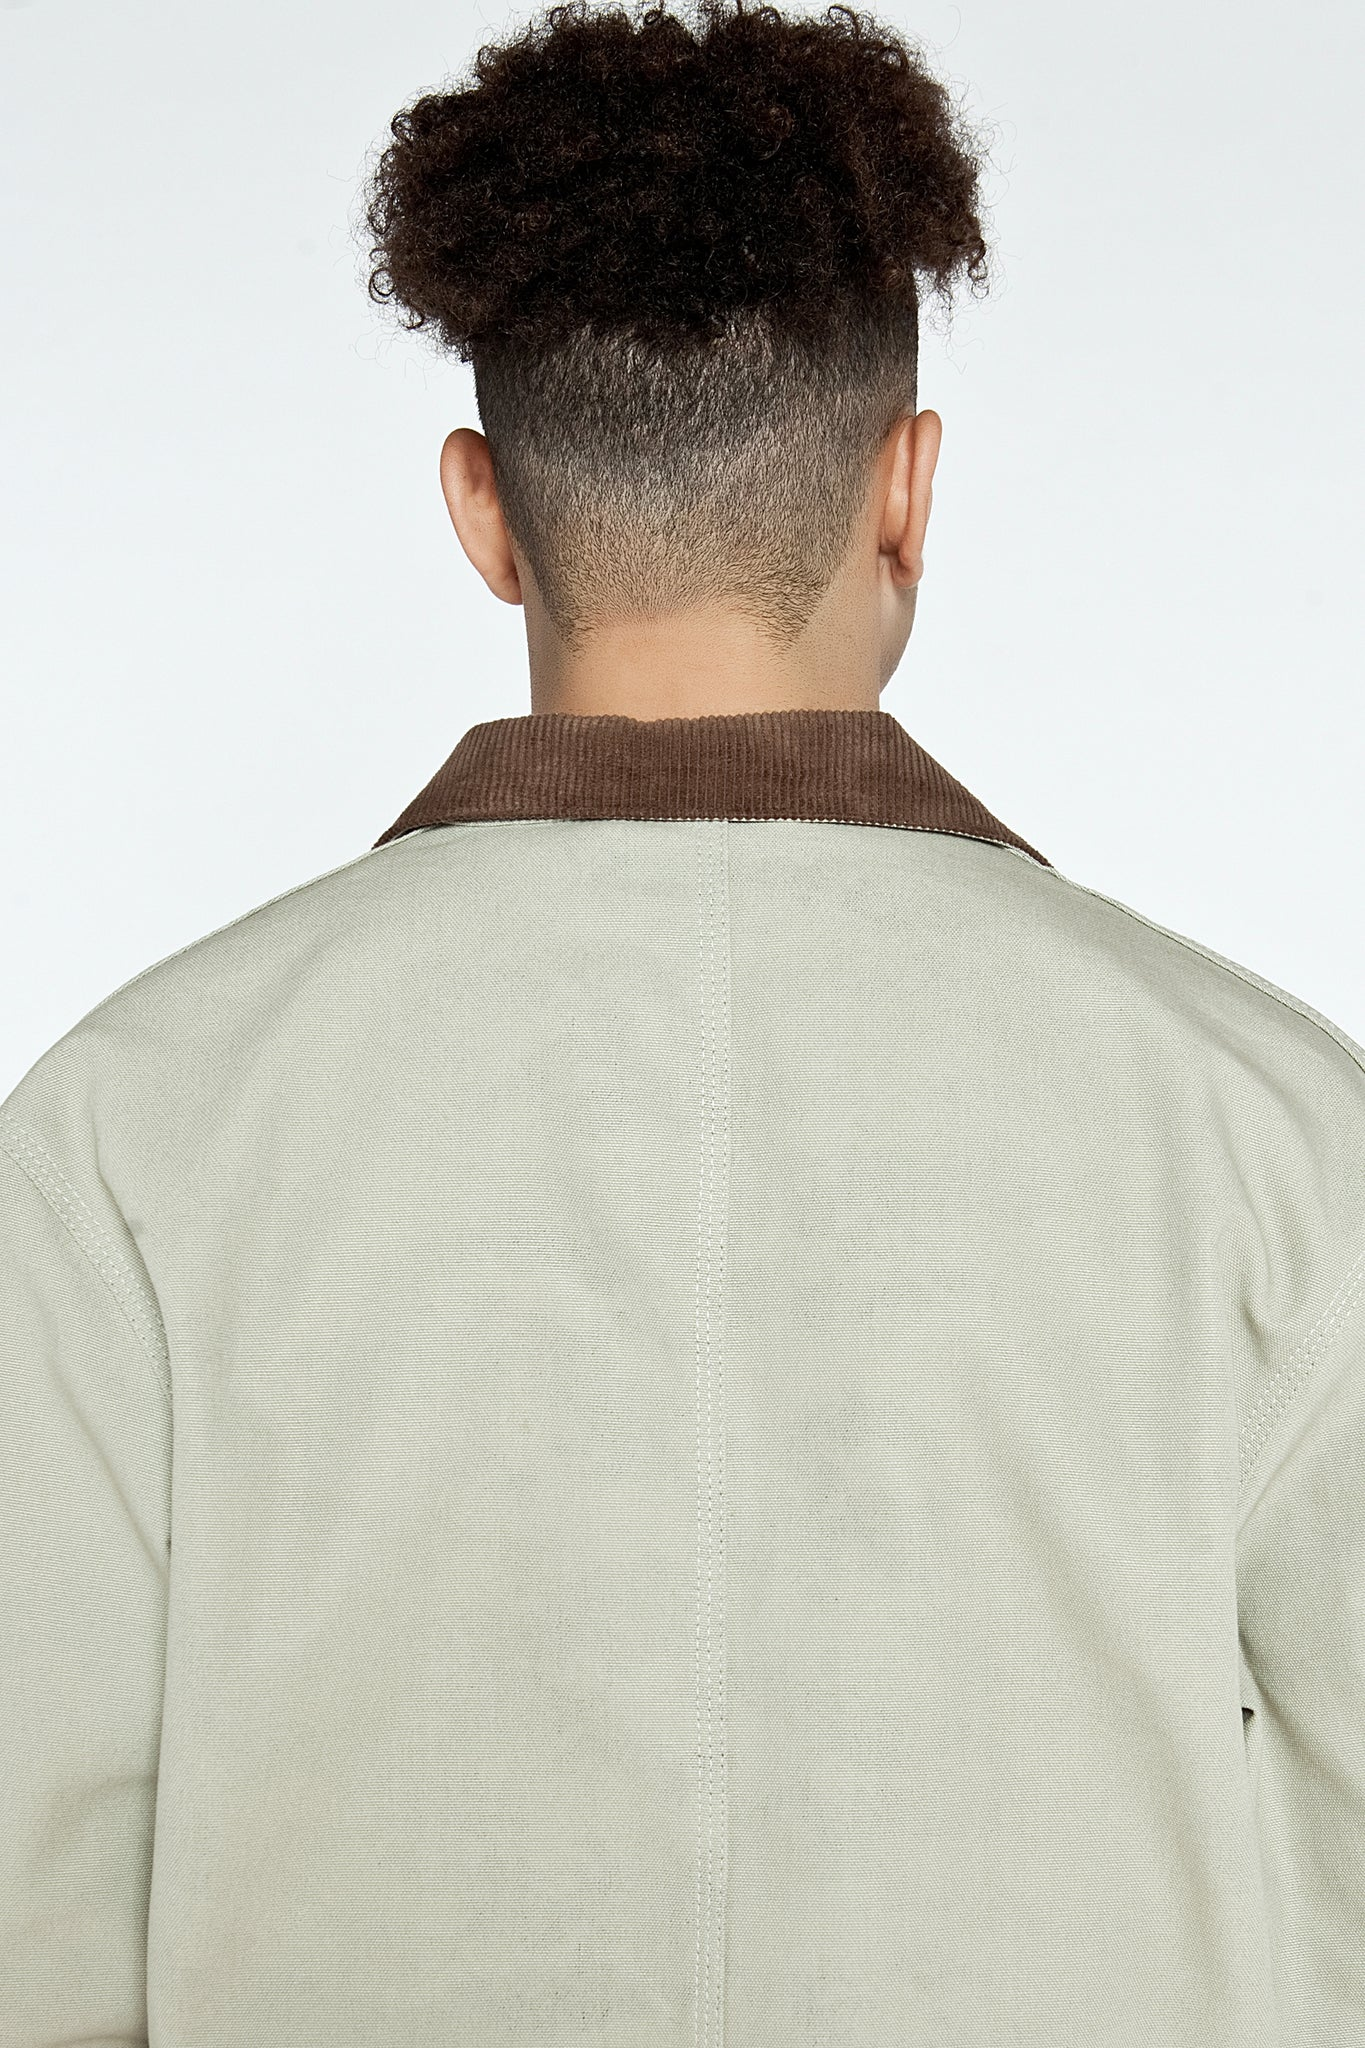 WORK JACKET - TIMBER